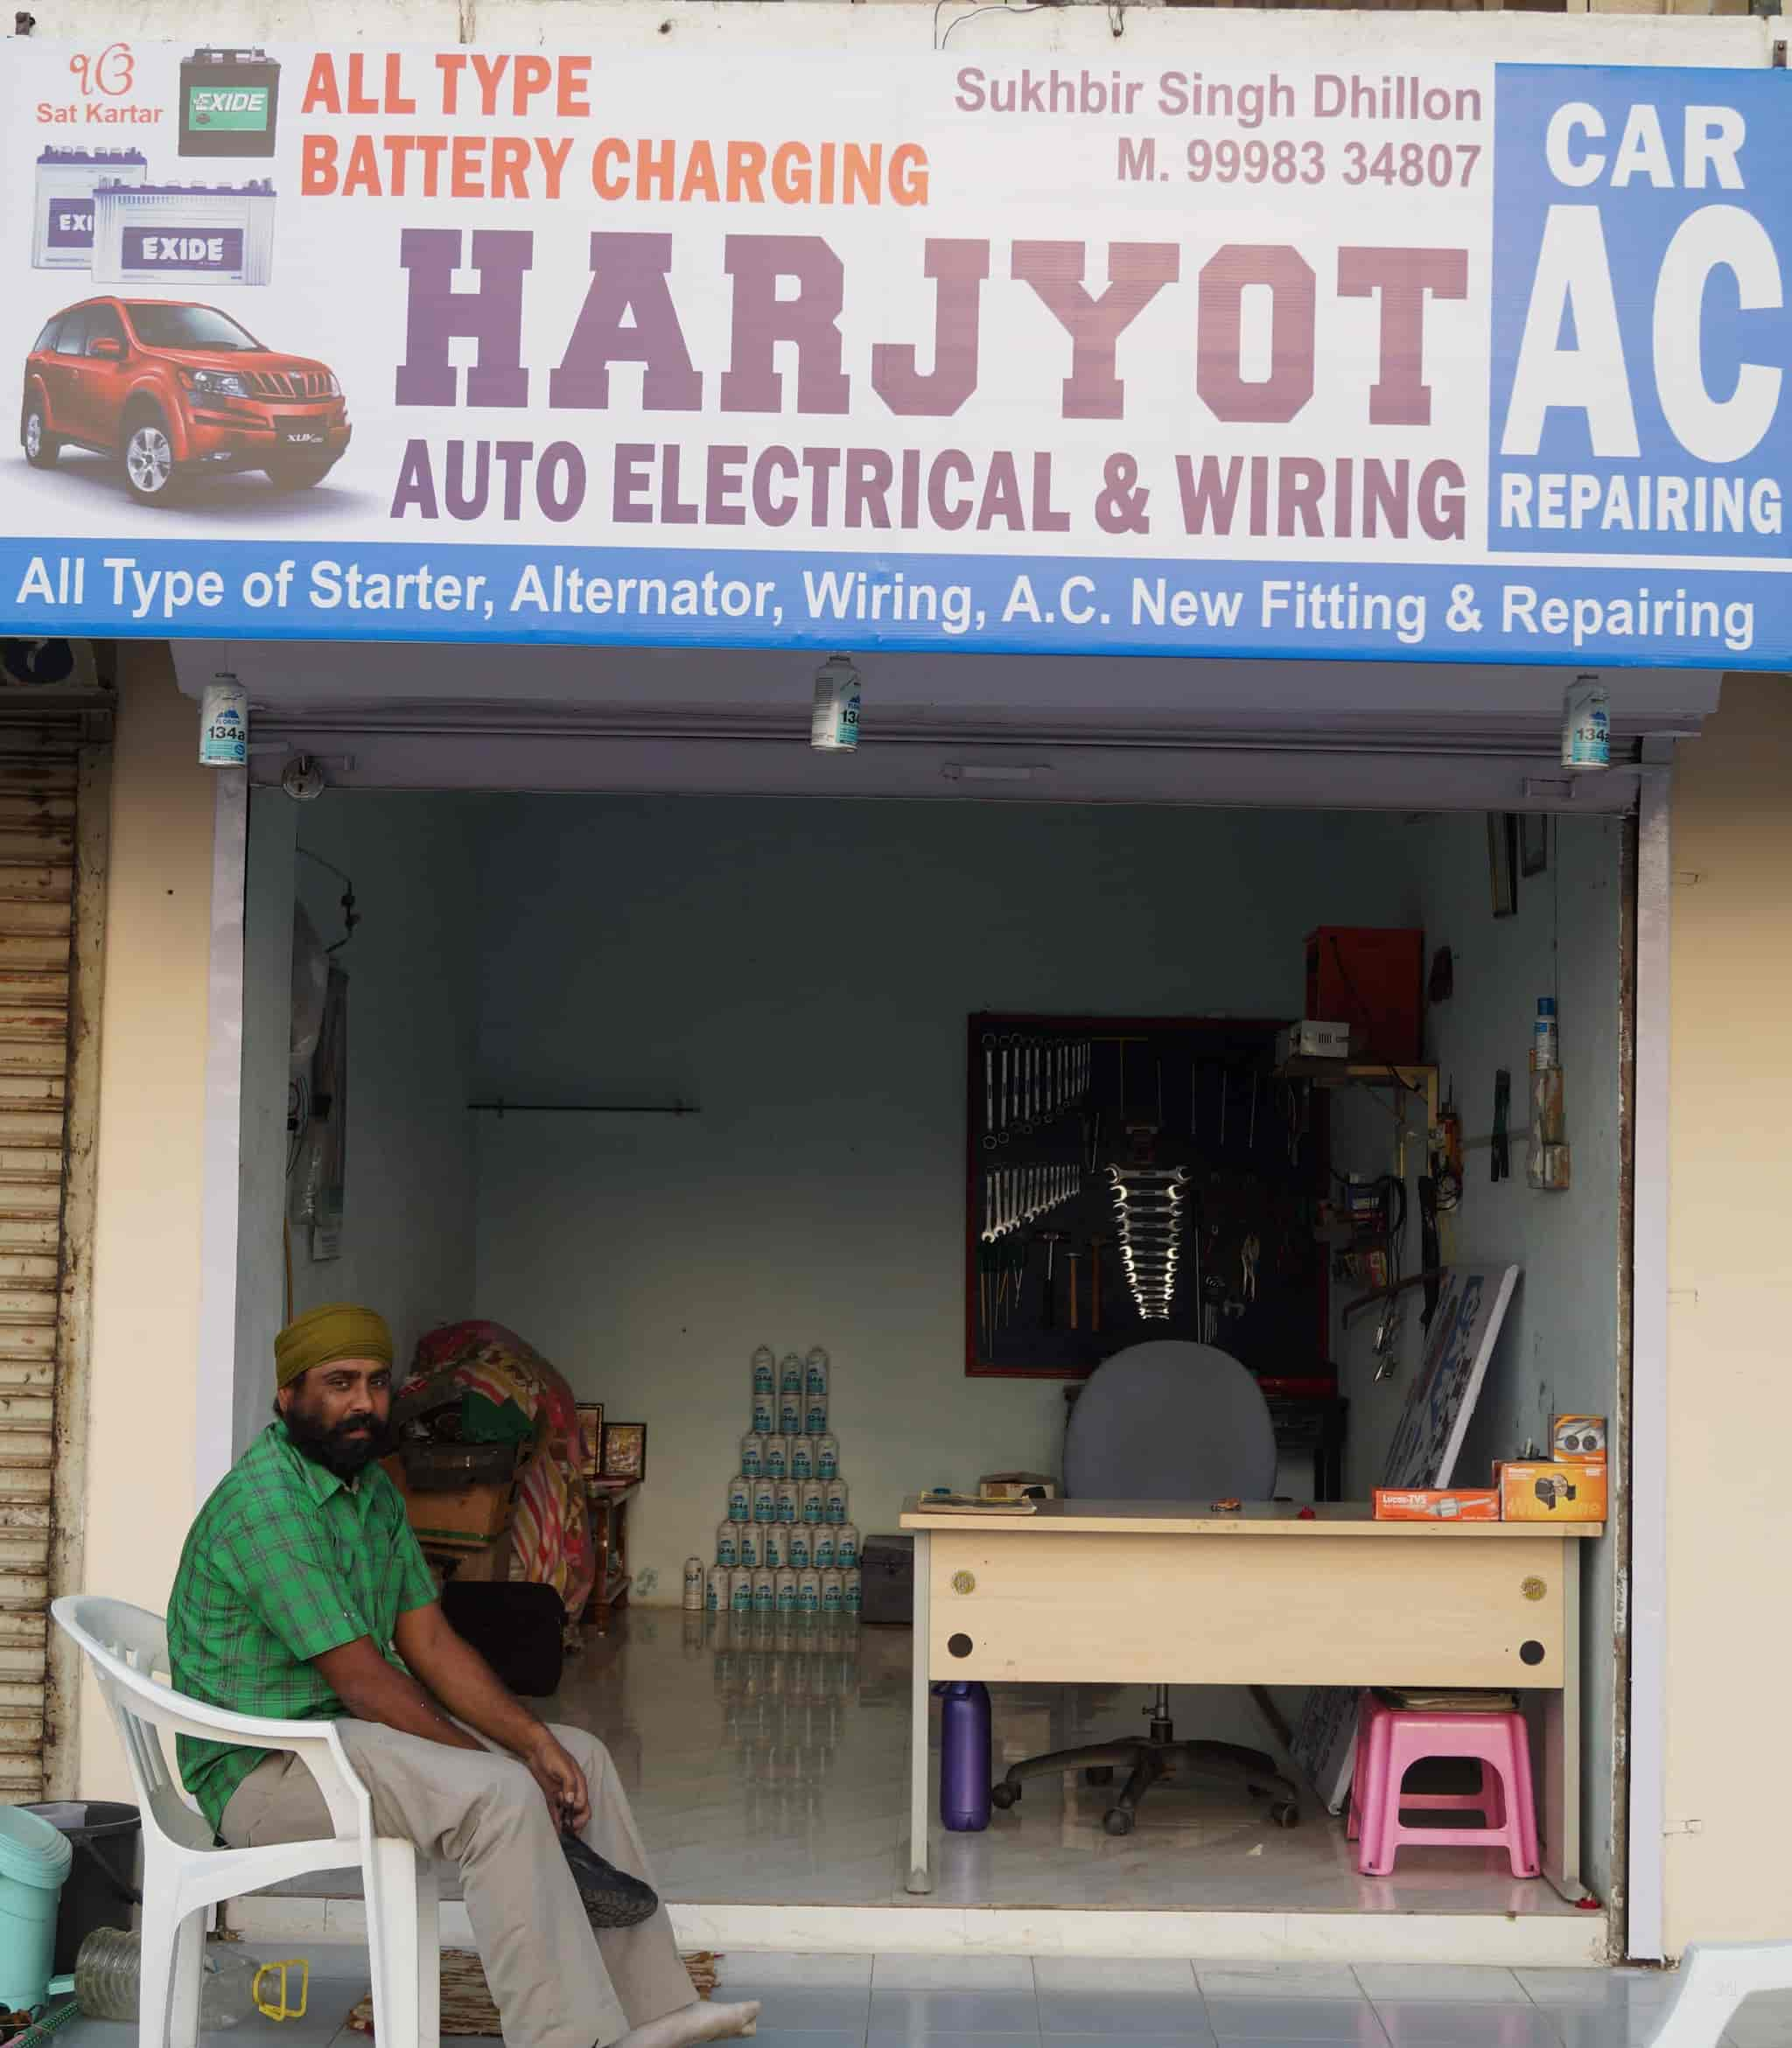 Terrific Harjyot Auto Electrical Wiring Photos Vasna Road Vadodara Wiring Cloud Tobiqorsaluggs Outletorg